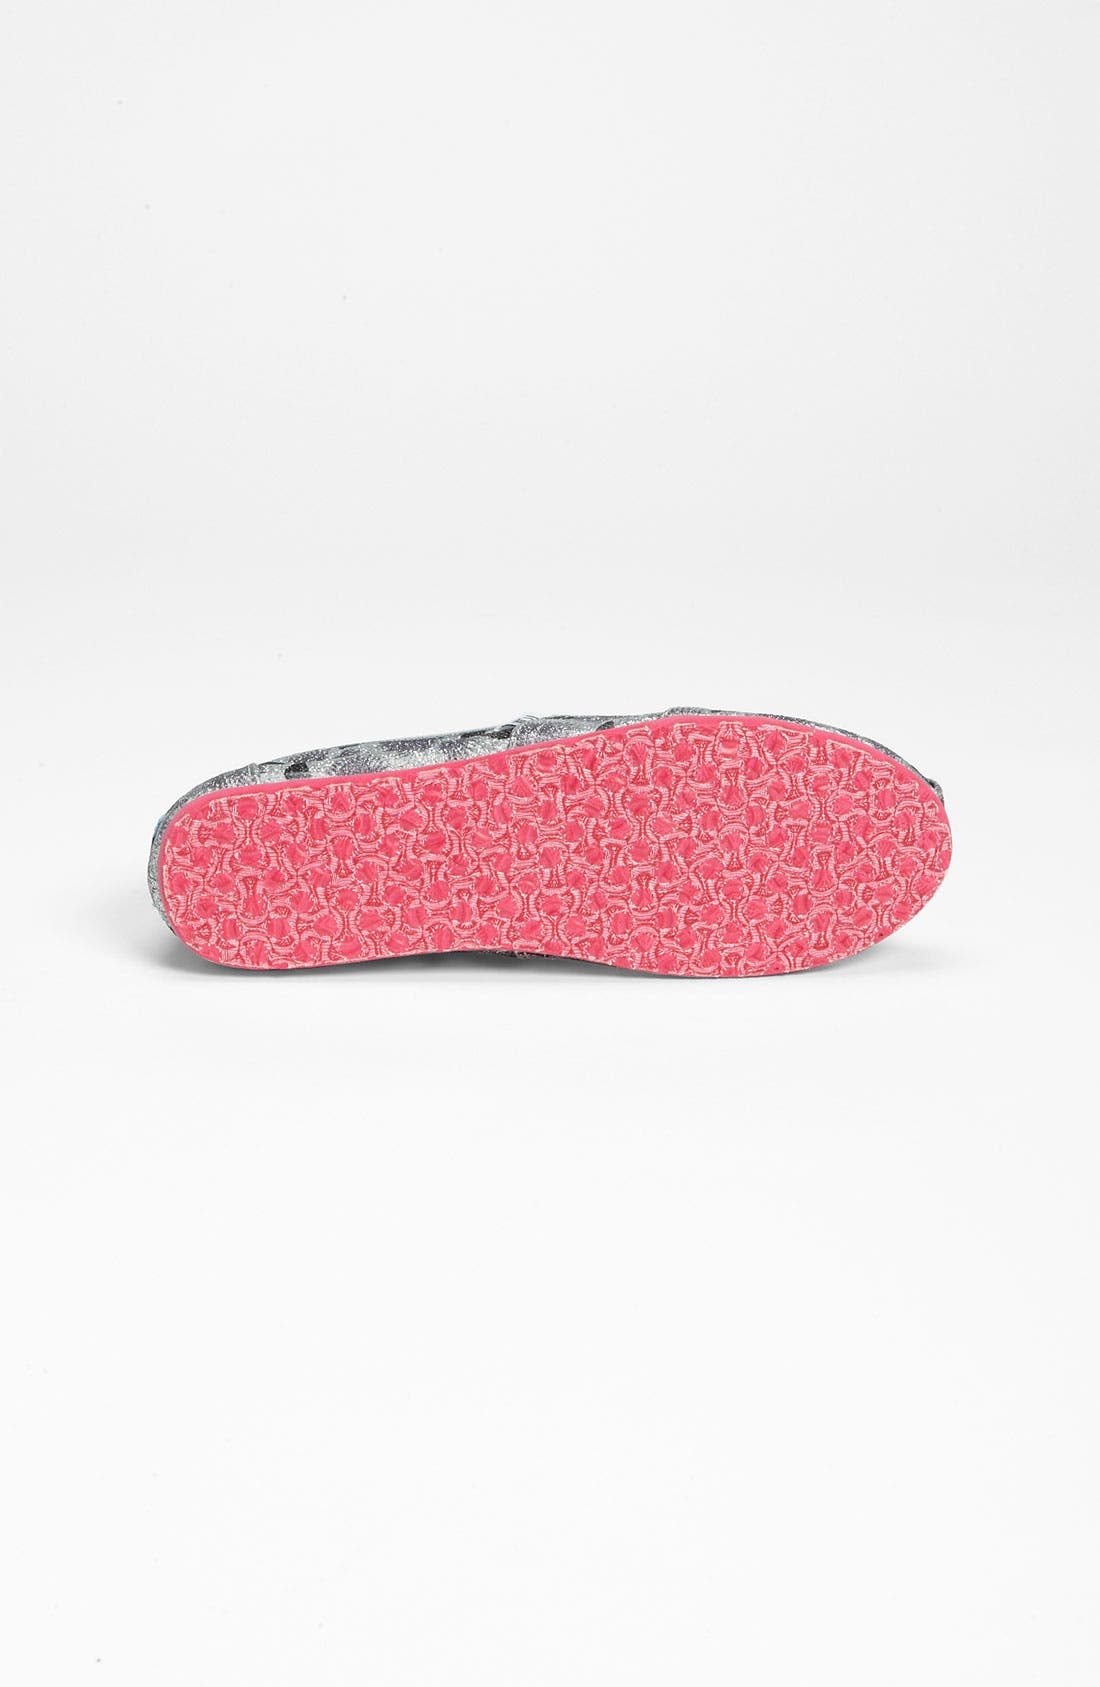 Alternate Image 4  - TOMS 'Classic Youth - Starburst' Slip-On (Little Kid & Big Kid) (Nordstrom Exclusive)